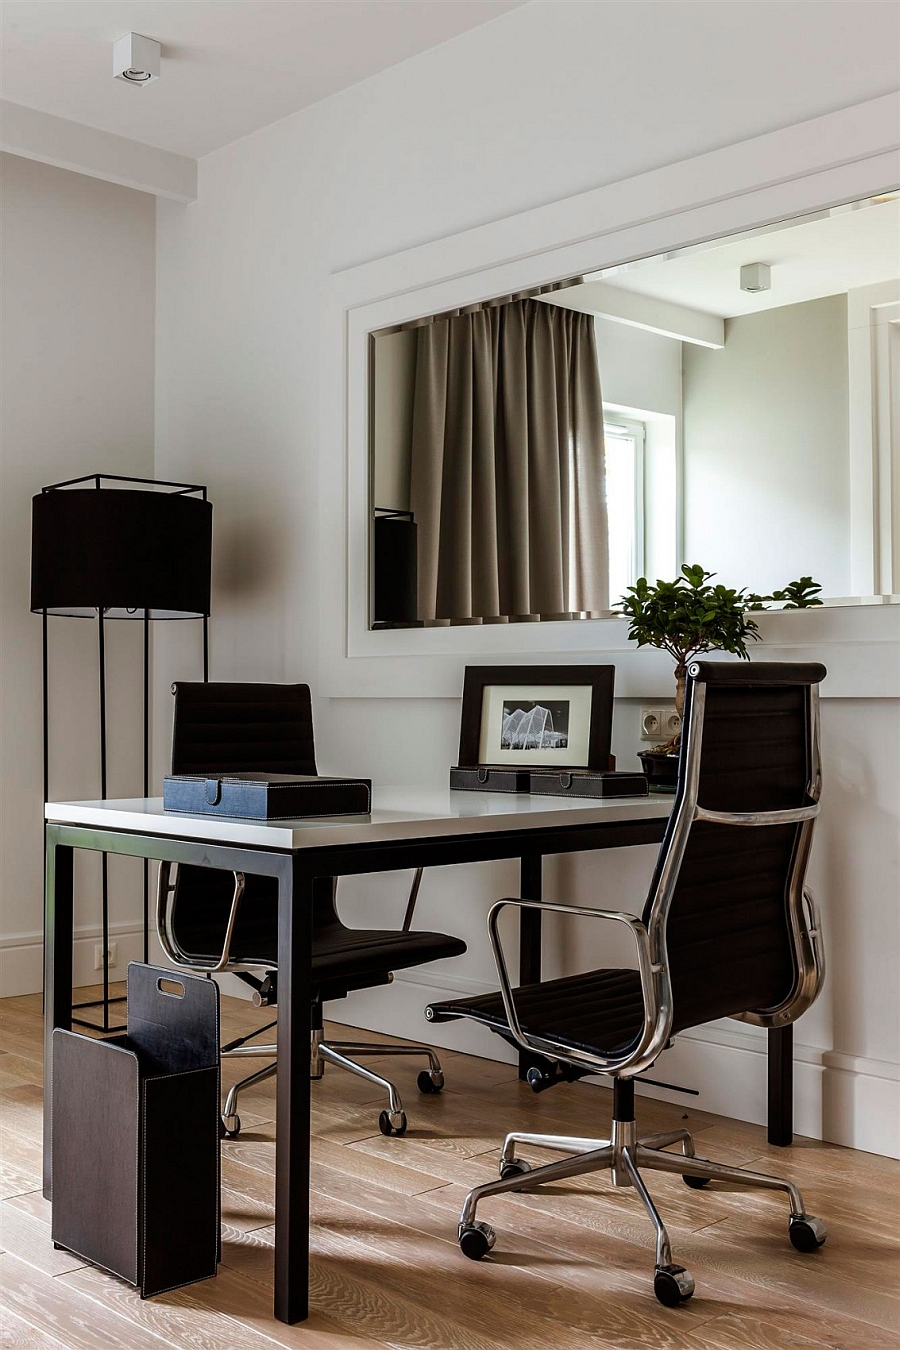 Posh home office idea